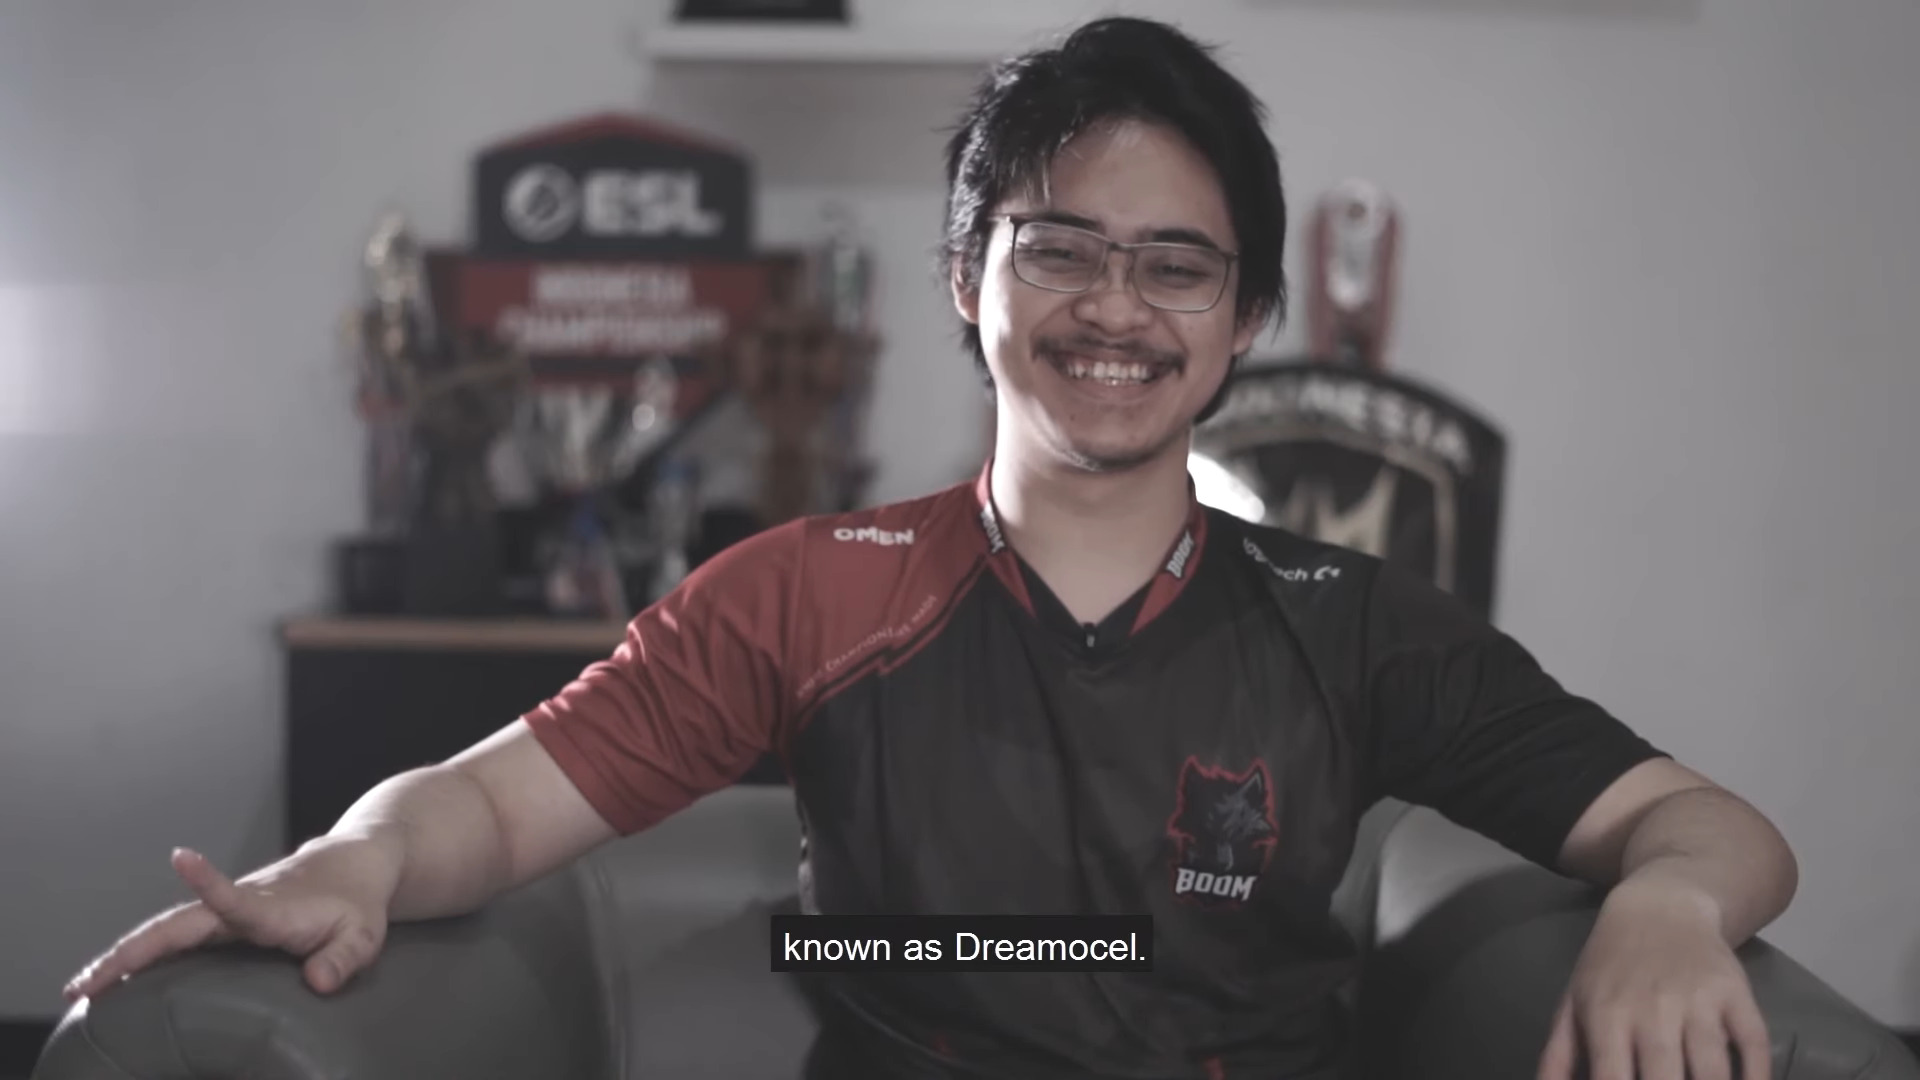 """Randy """"Dreamocel"""" Sapoetra Bids Farewell To Boom Esports After Four Years"""